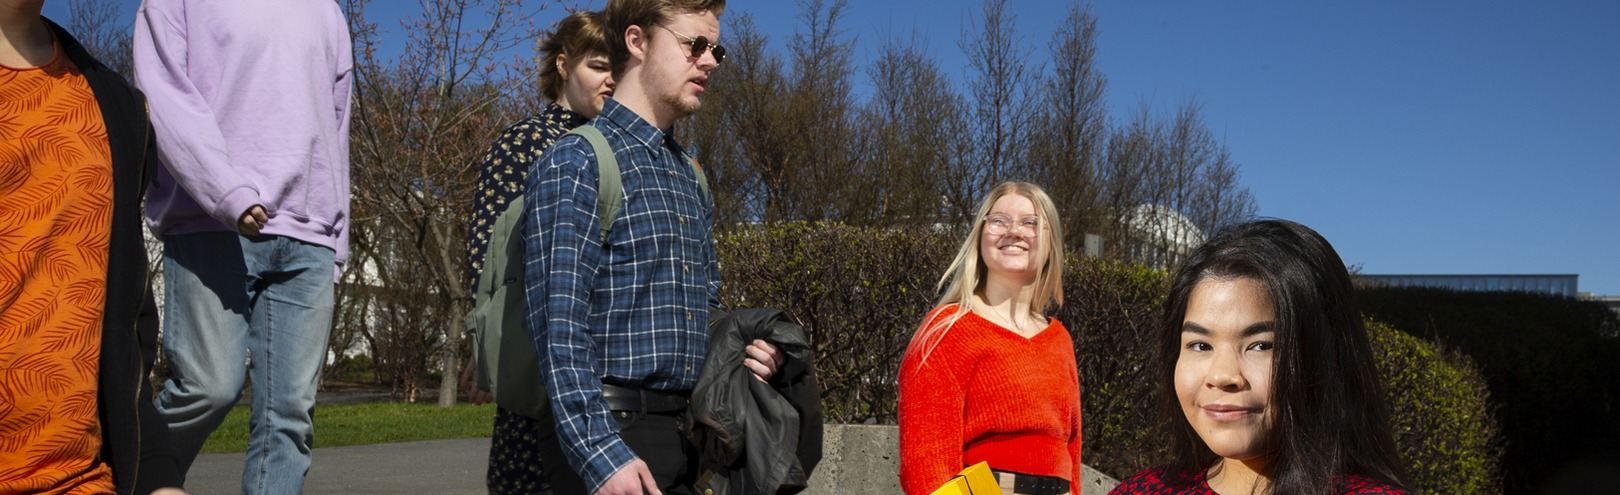 UI student representatives play a leading role in Aurora - Available at University of Iceland